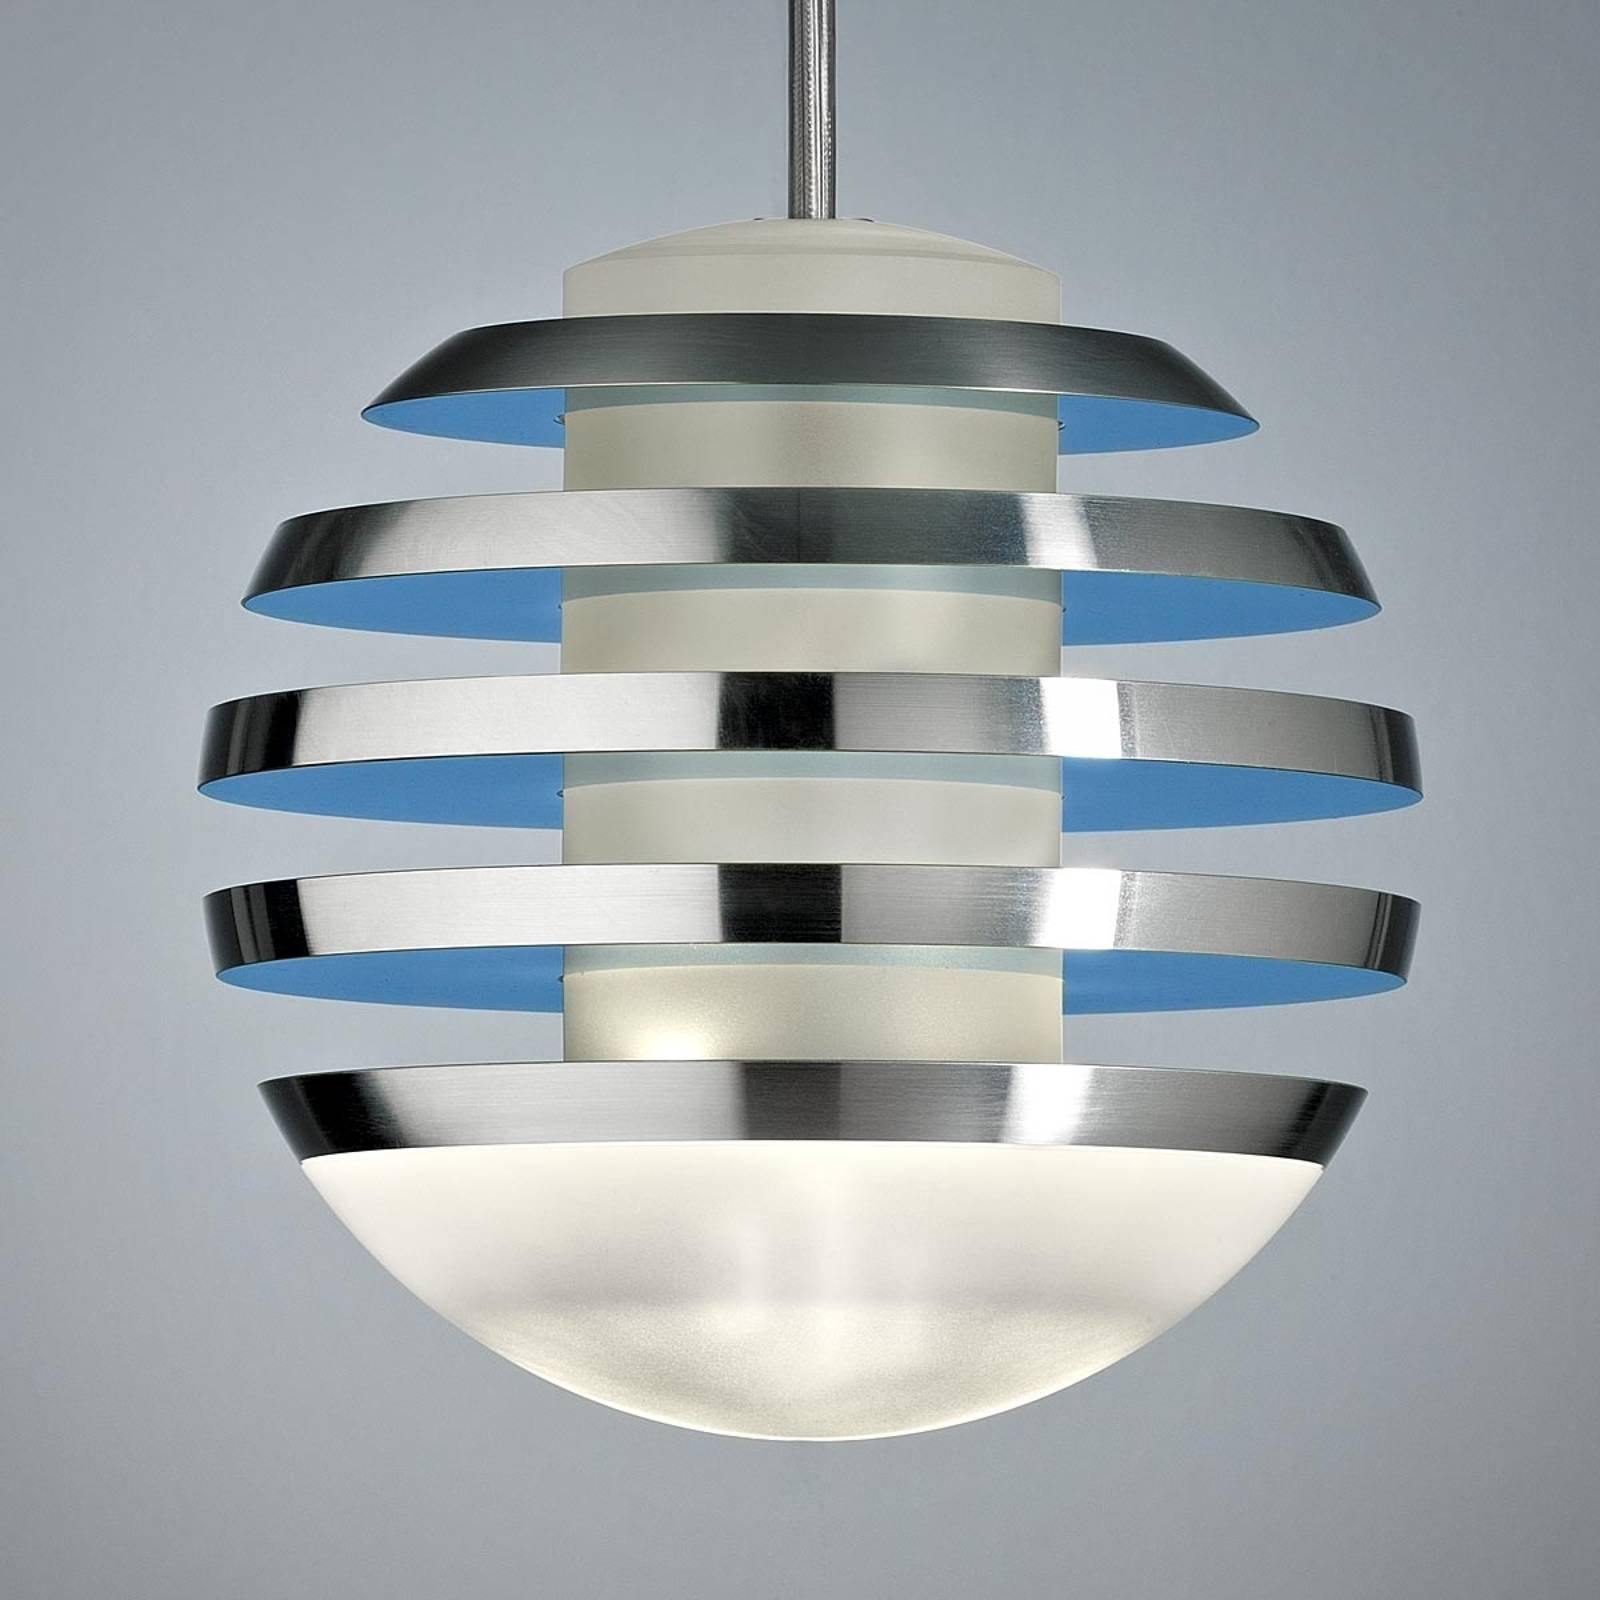 LED hanging light BULO, light blue from TECNOLUMEN